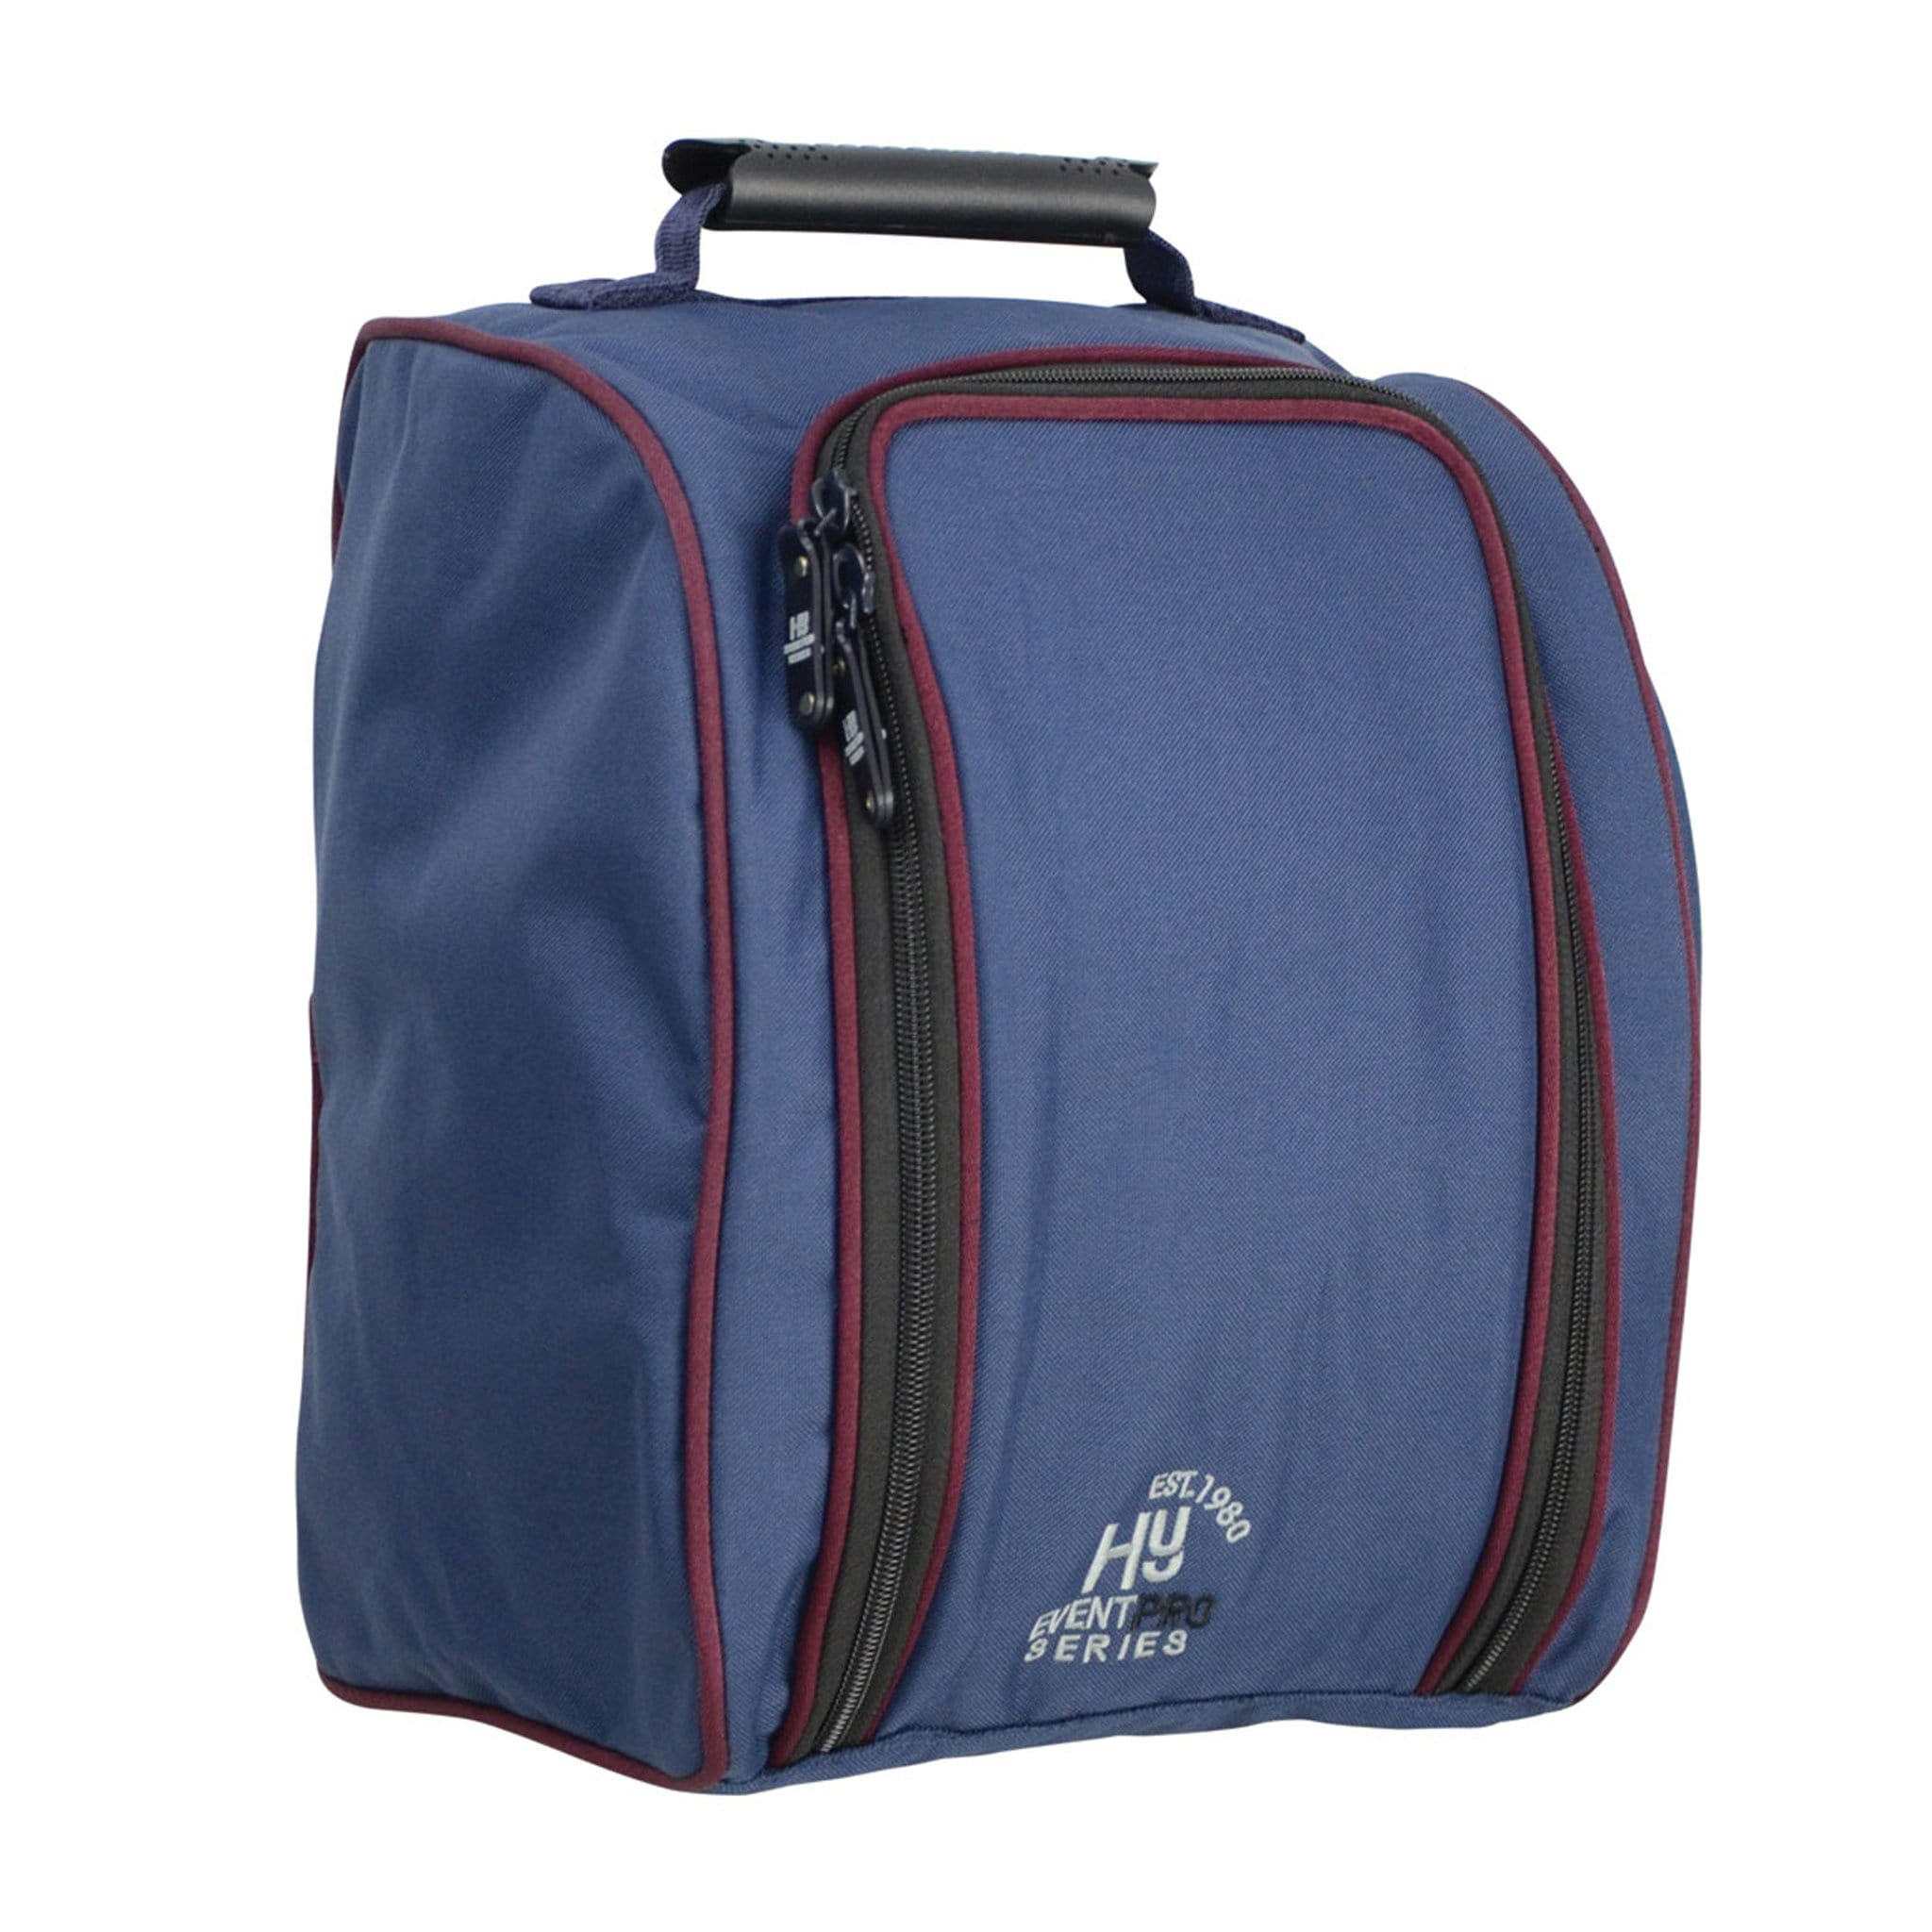 Hy Event Pro Series Helmet Bag 16867 Navy and Burgundy Front and Side